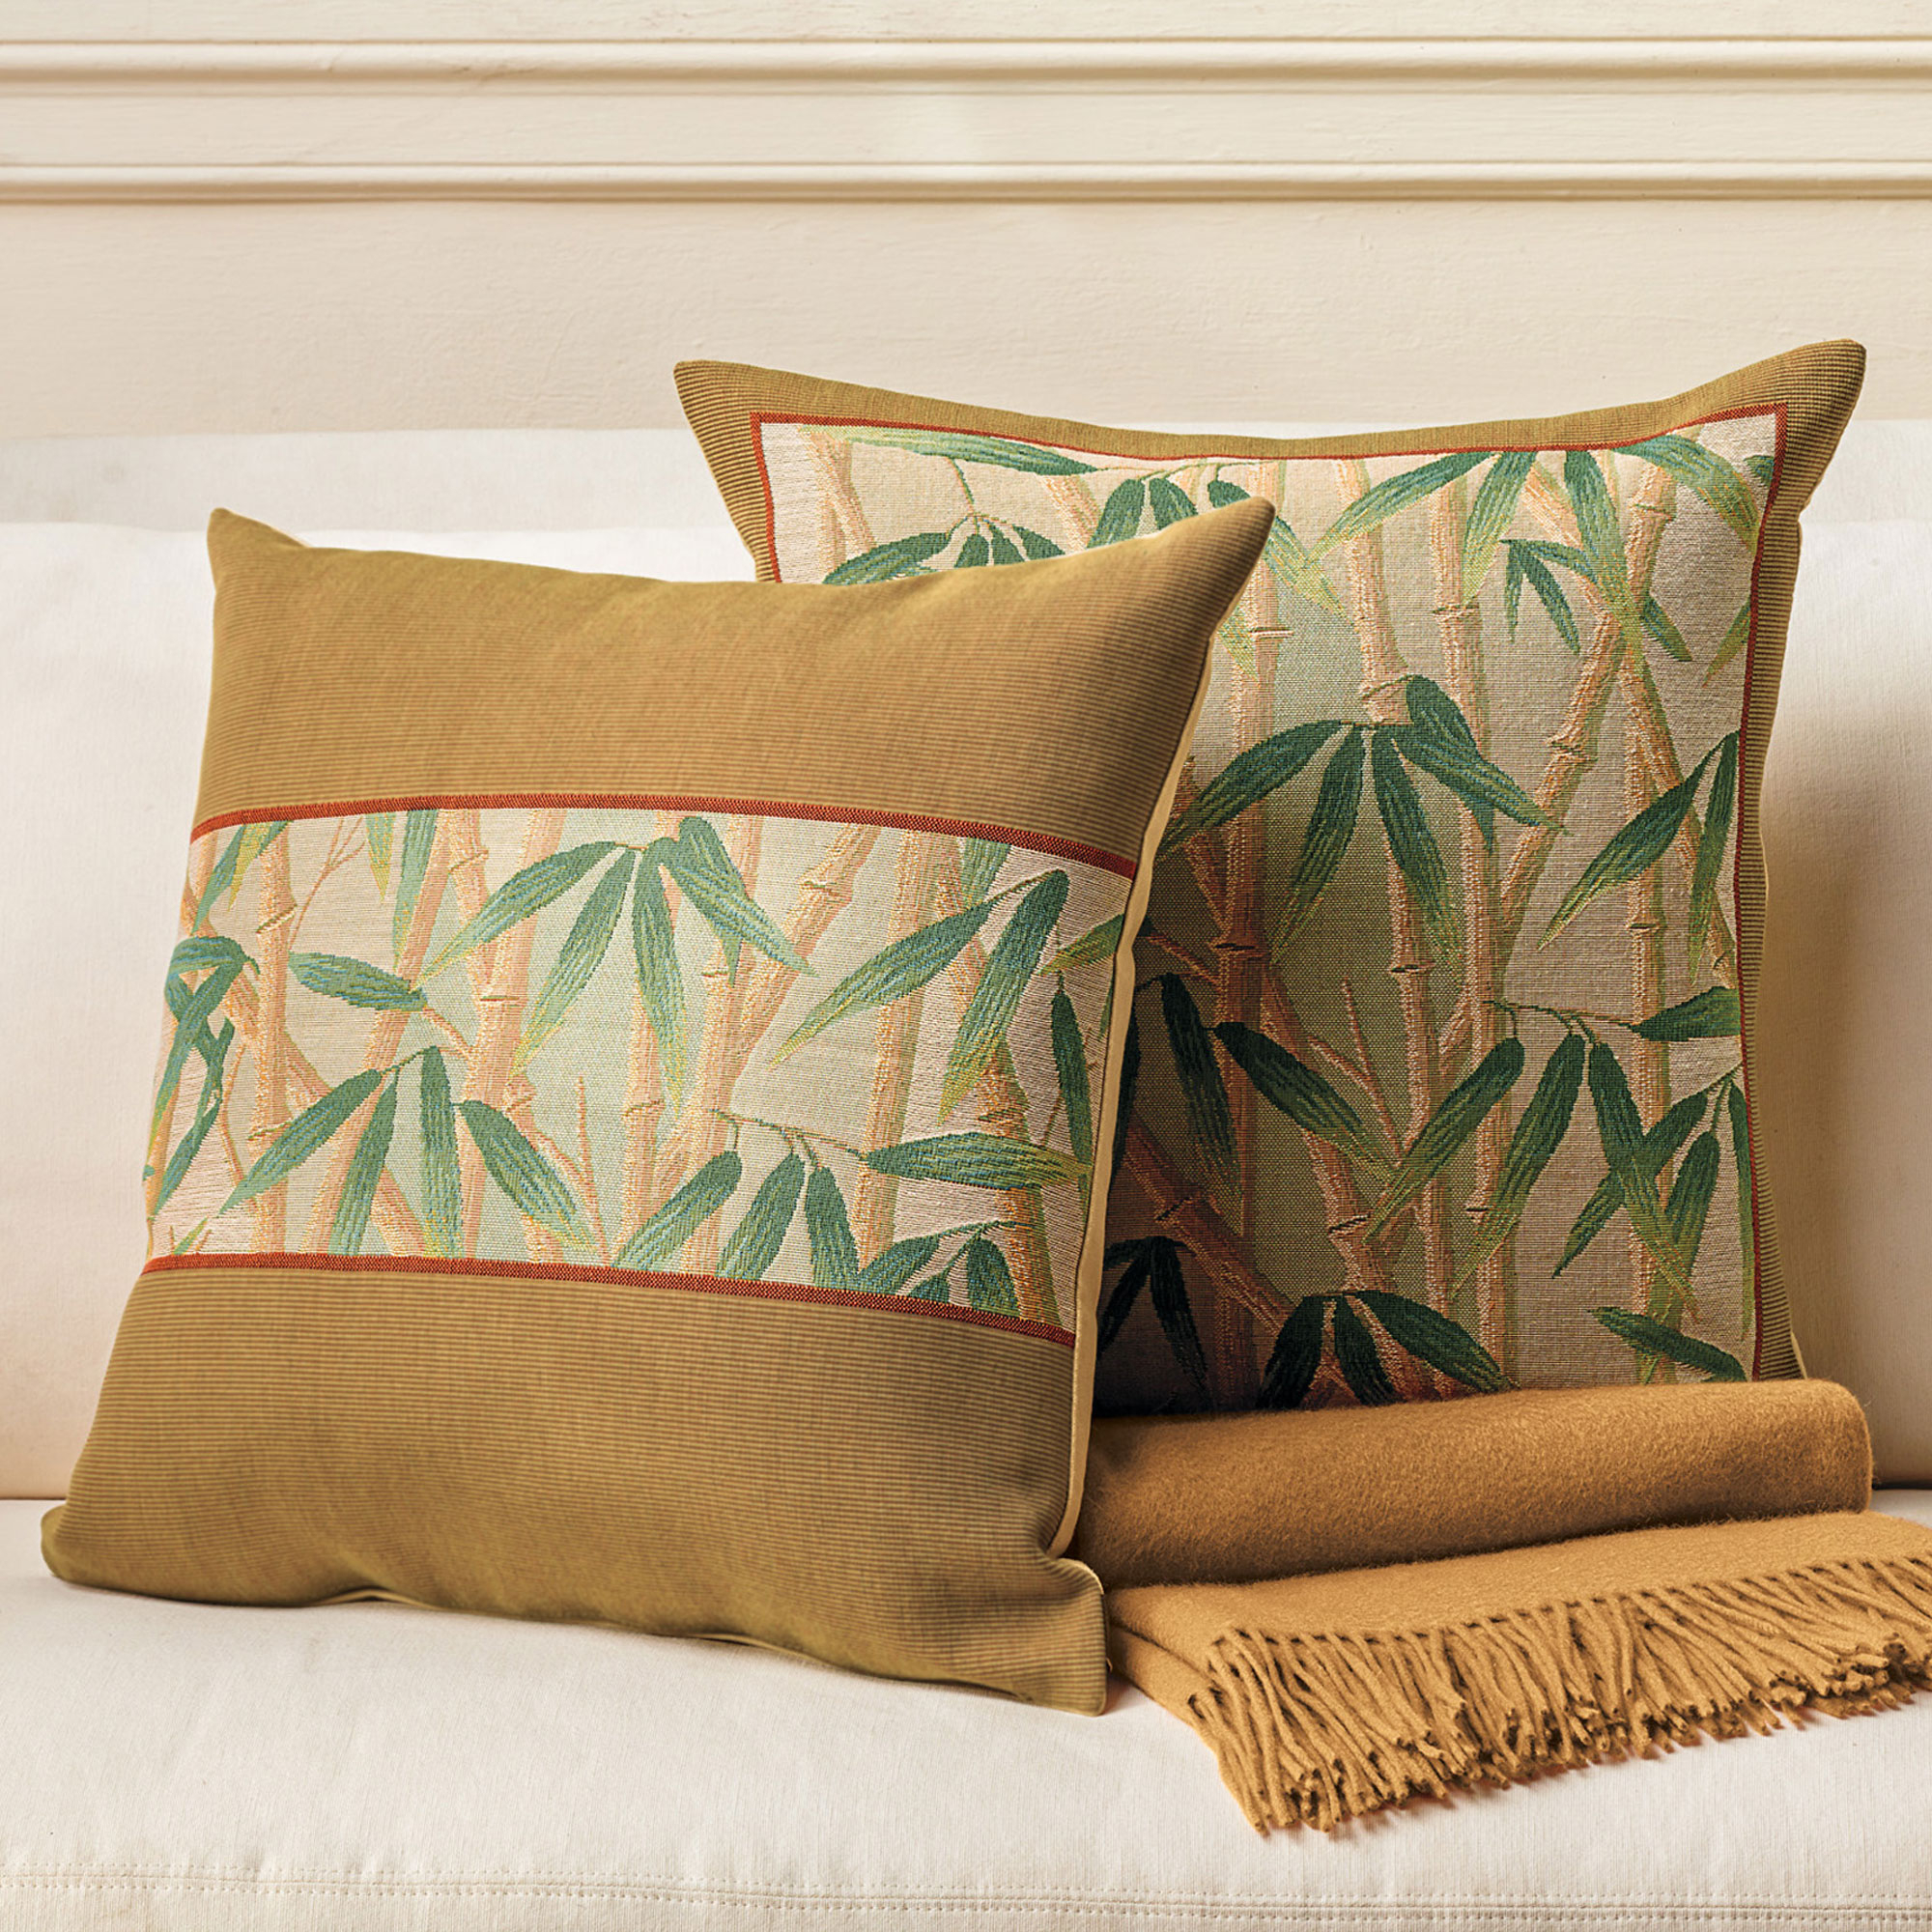 Bamboo Forest Pillows